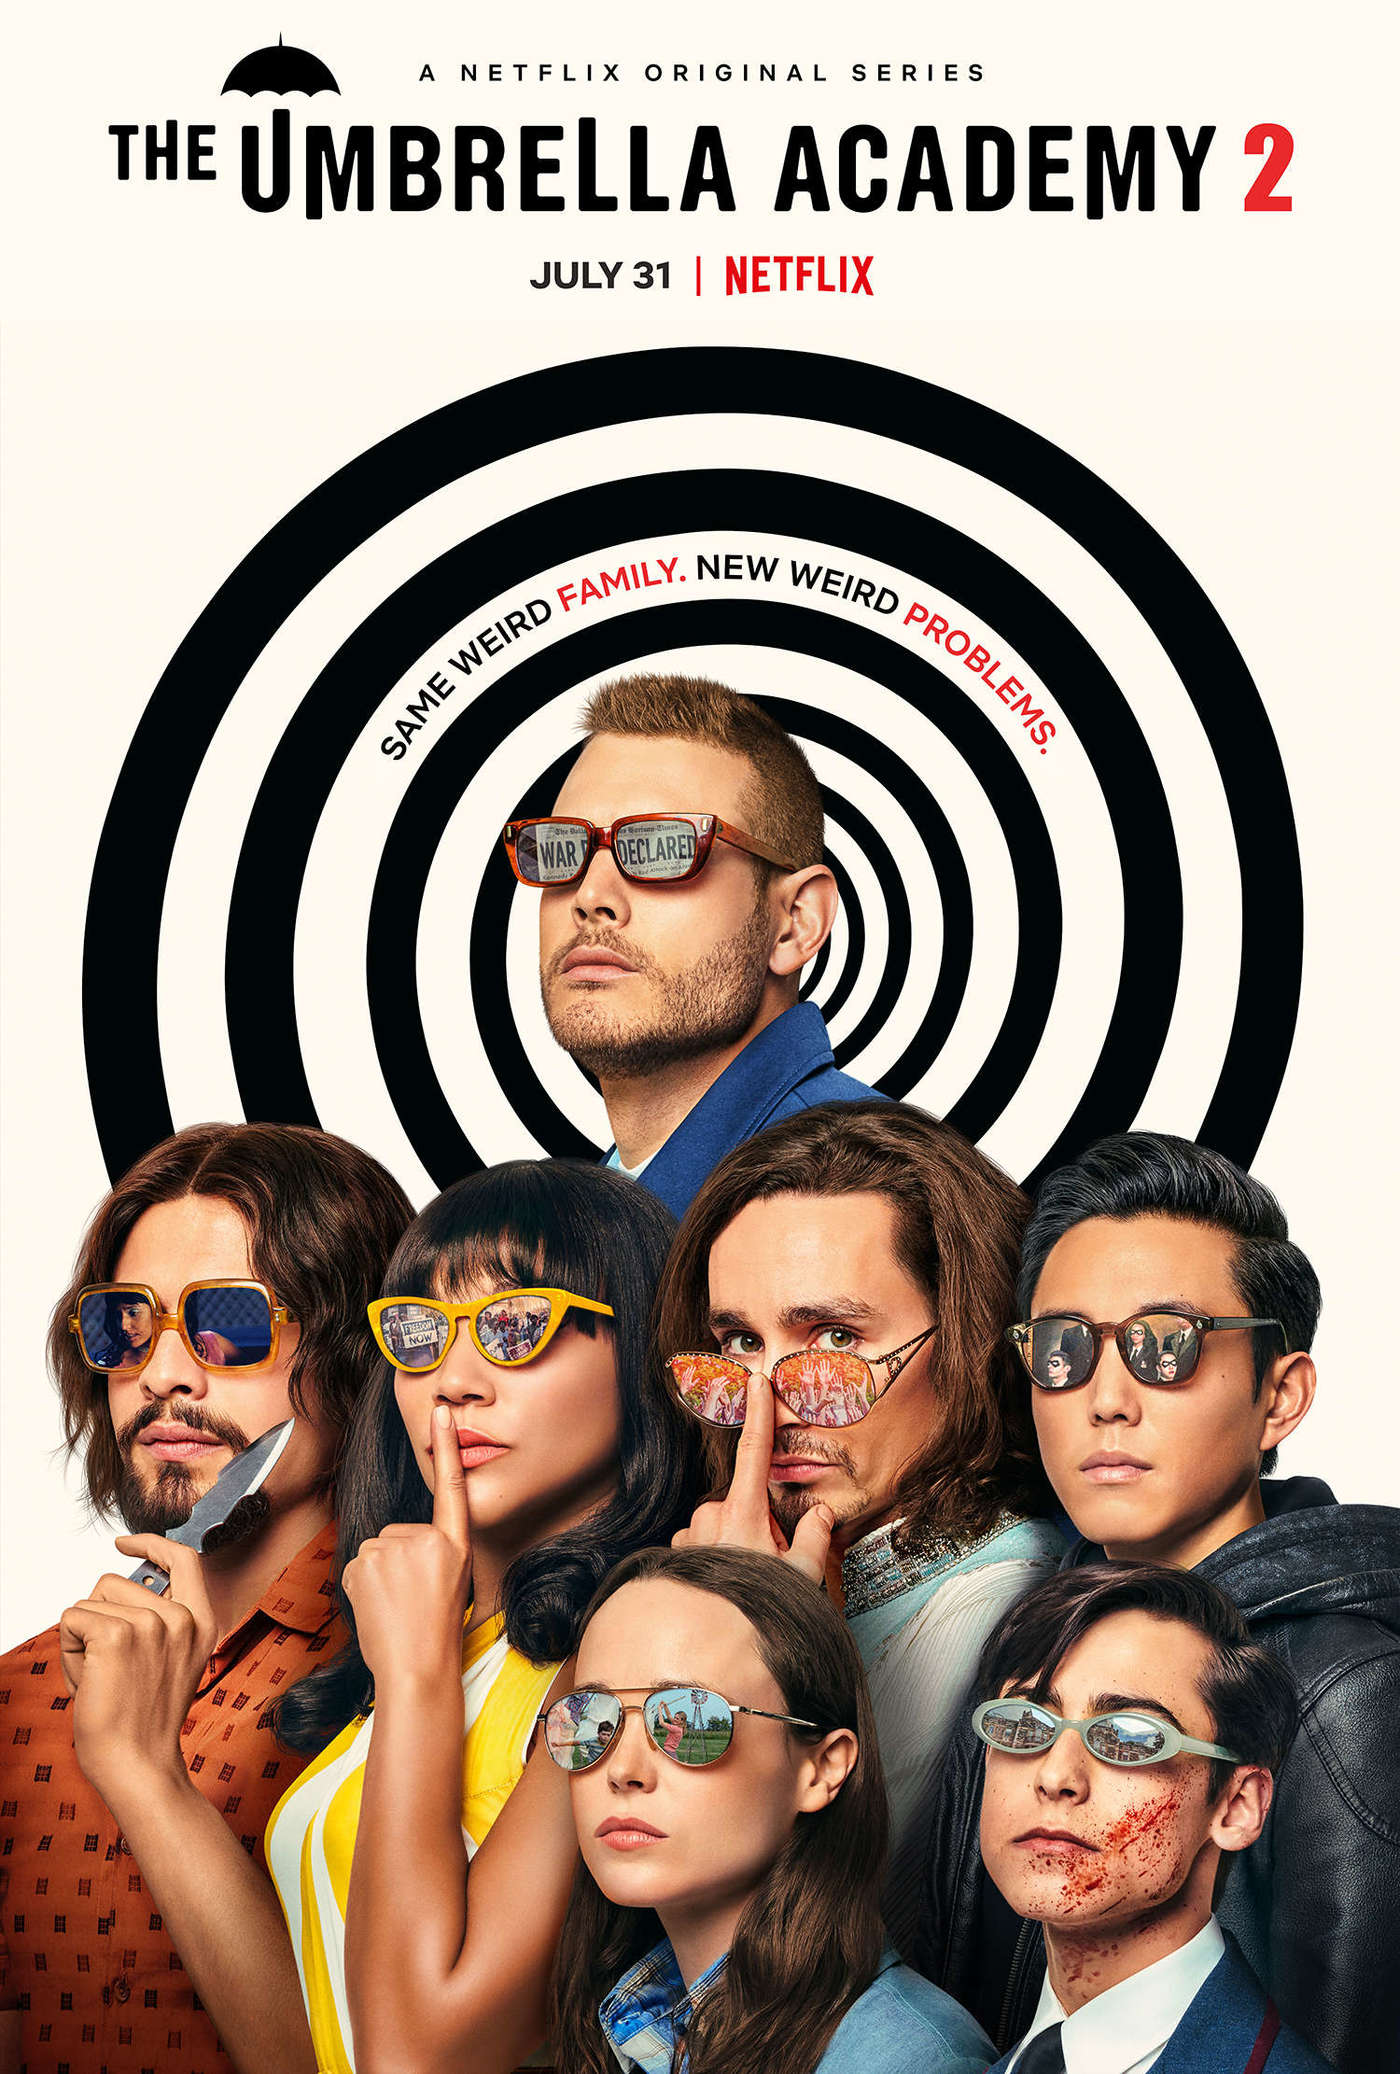 the umbrella academy - netflix - wolf in a suit - wolfinasuit - wolf in a suit blog - wolf in a suit music blog